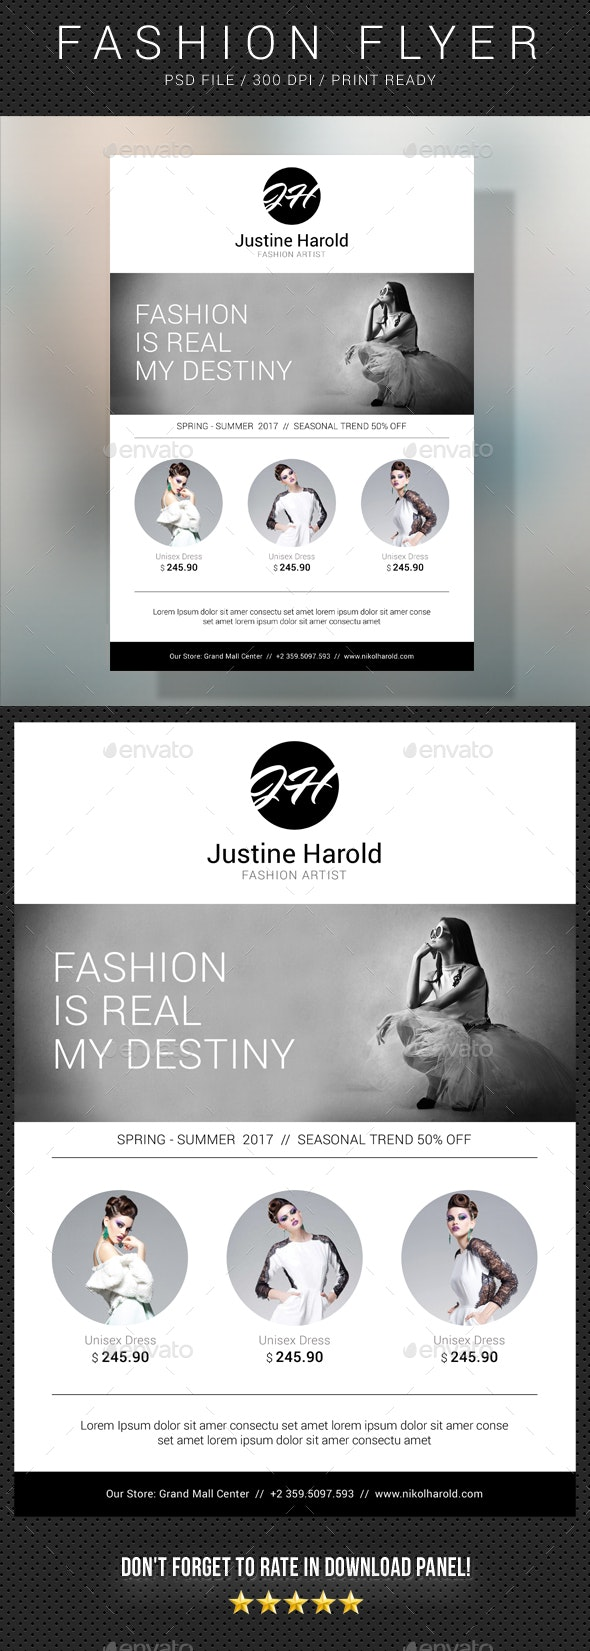 Fashion Flyer 03 - Commerce Flyers